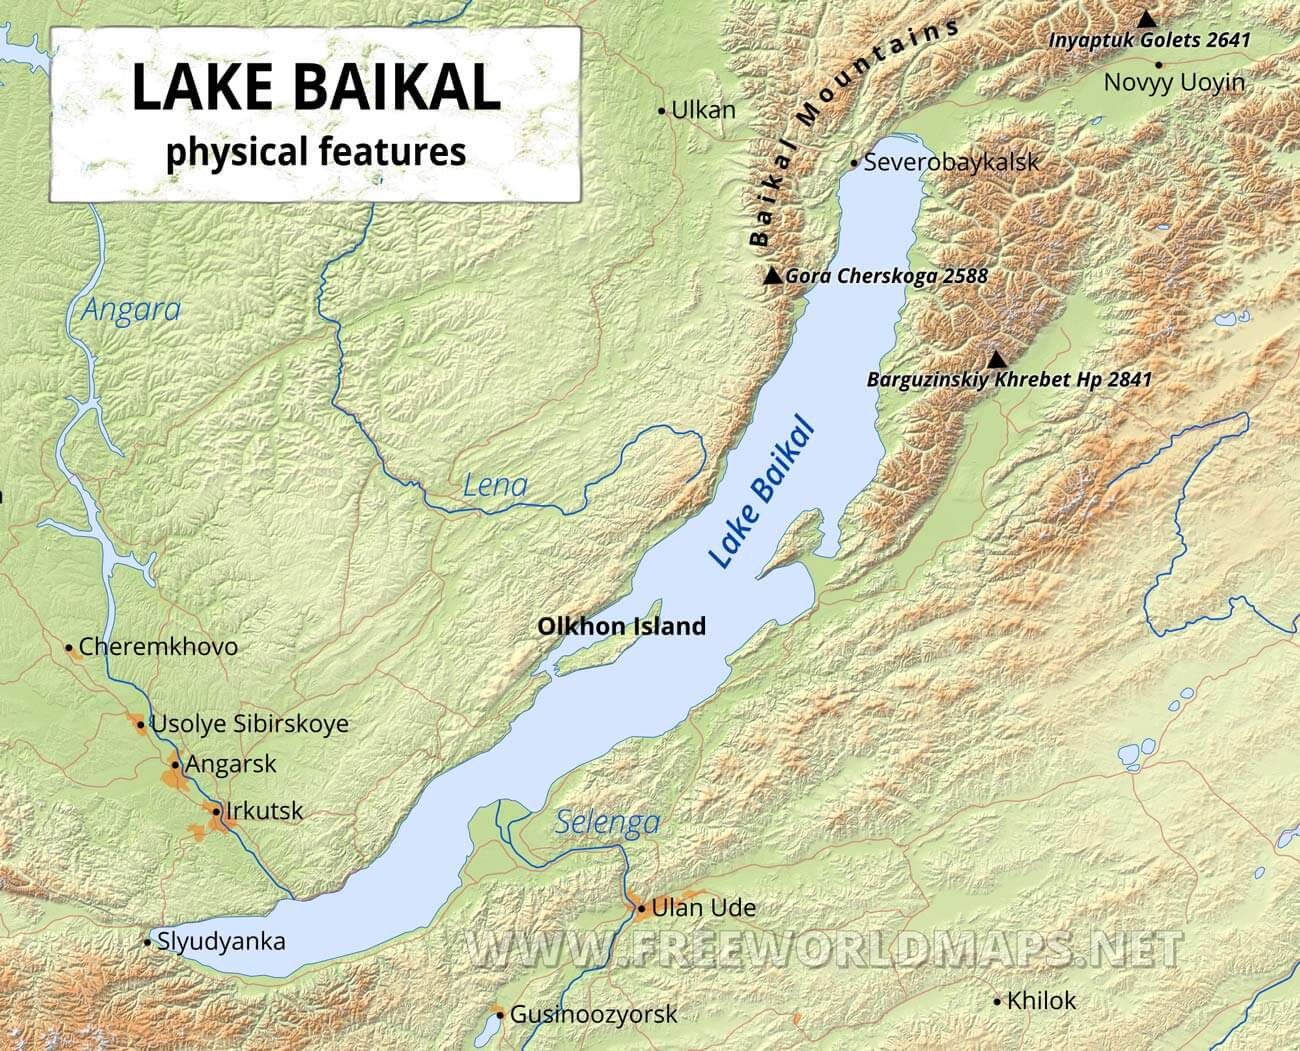 lake baikal on map Lake Baikal Maps lake baikal on map